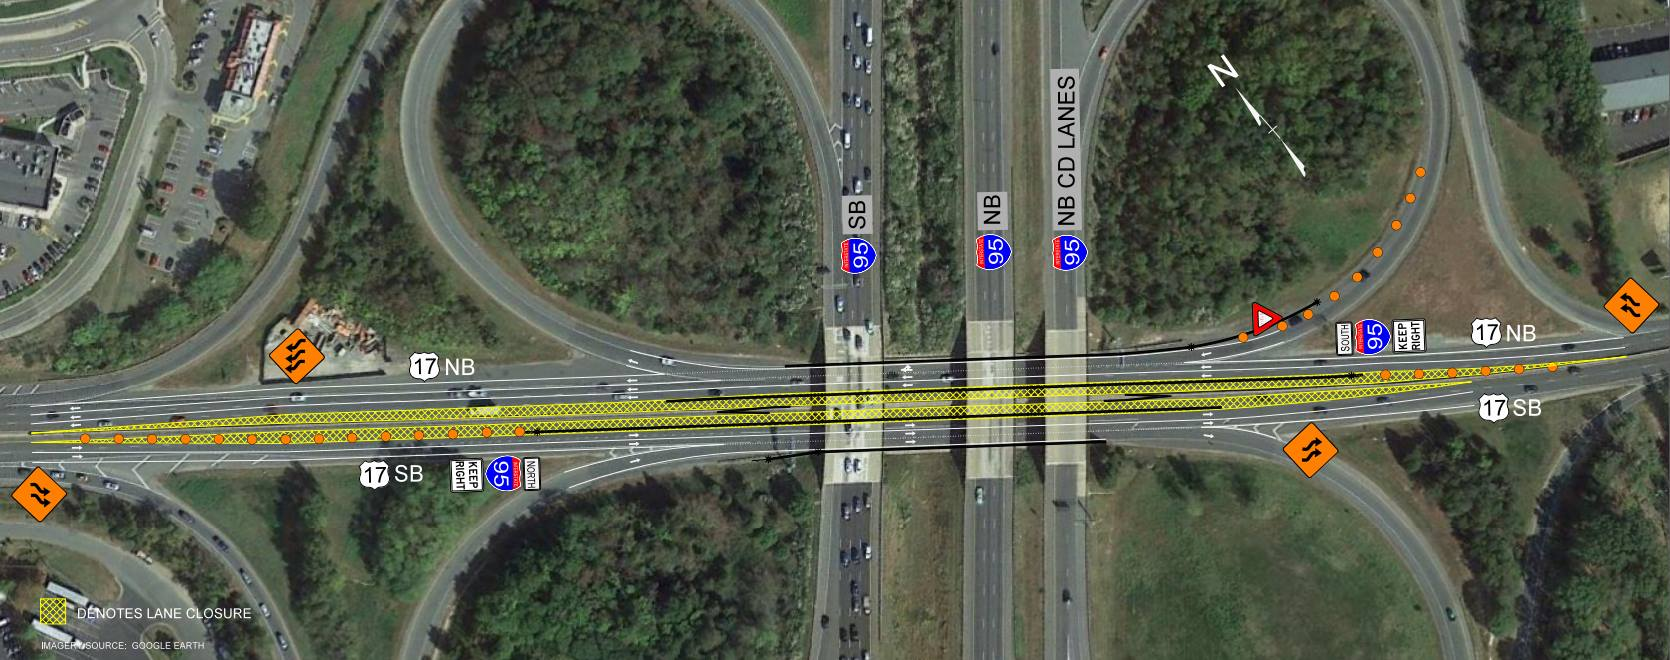 New work zone pattern at Rt. 17 and I-95 in Stafford